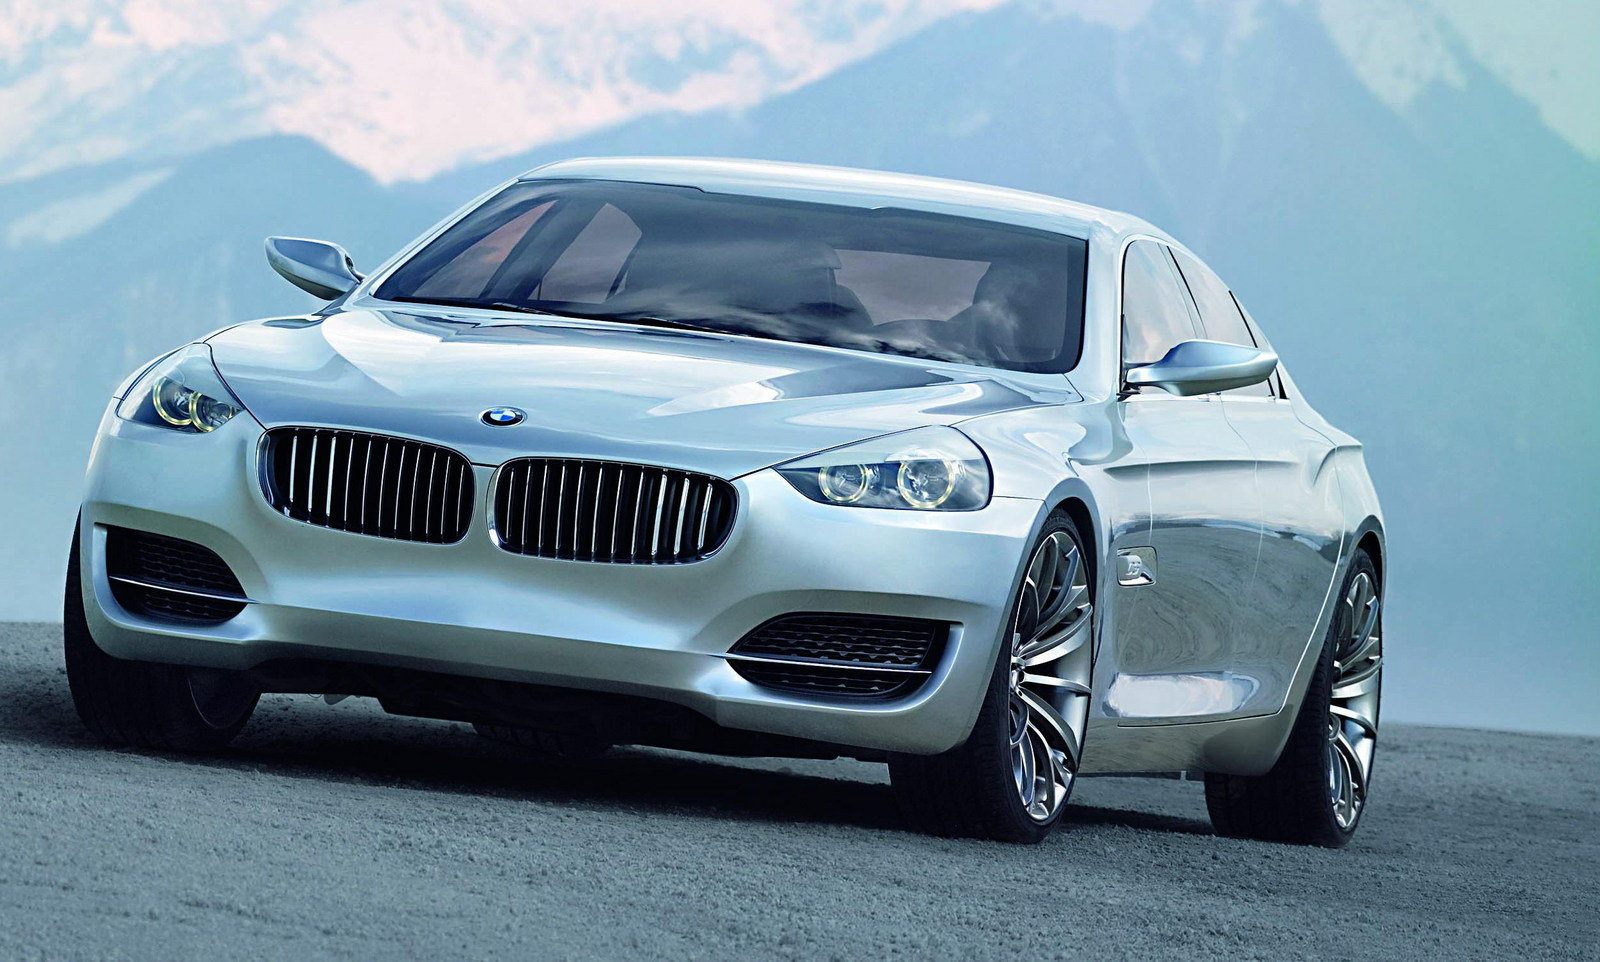 Bmw M10 To Be Powered By A V12 Engine News Top Speed